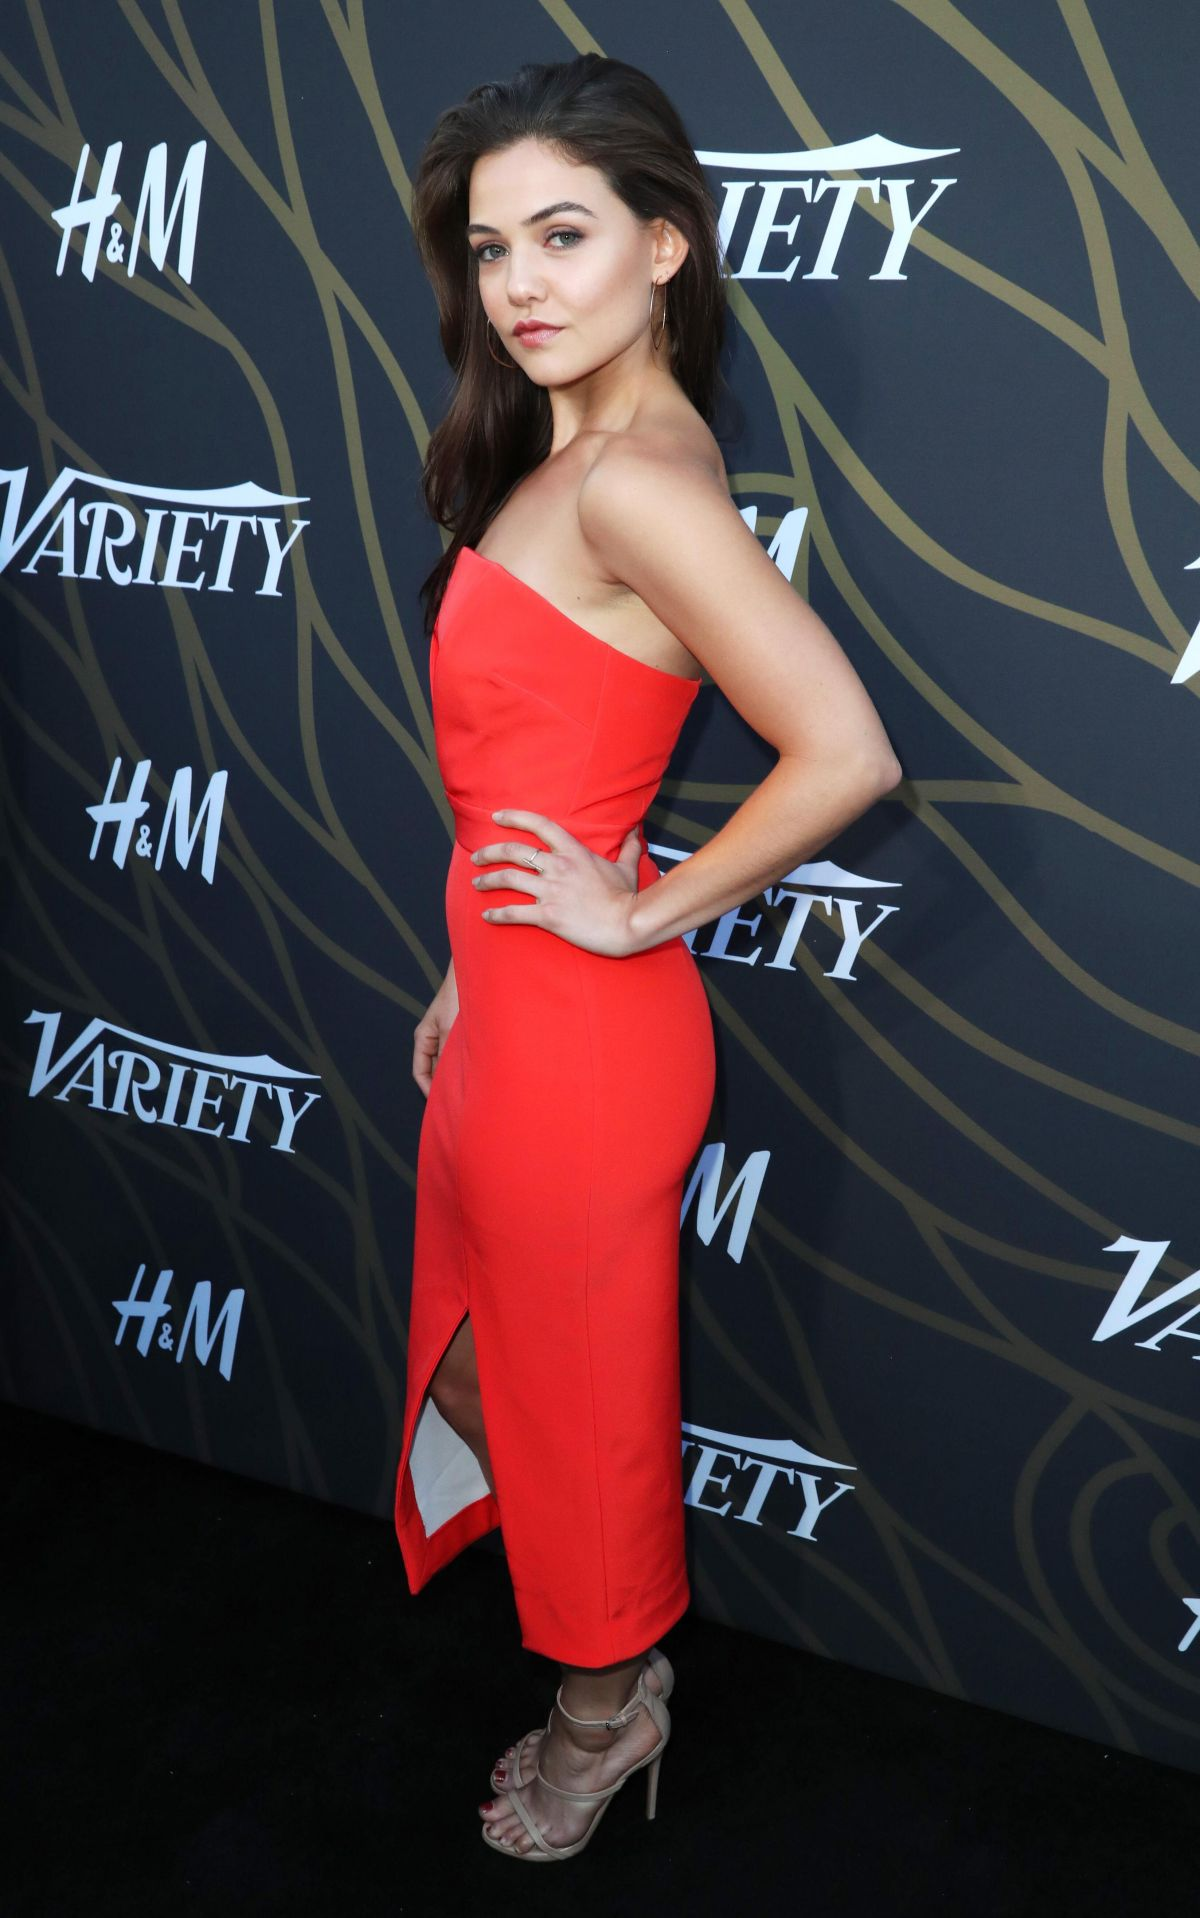 Danielle Campbell At Variety's Power of young Hollywood in LA danielle-campbell-at-variety-s-power-of-young-hollywood-in-la-_2